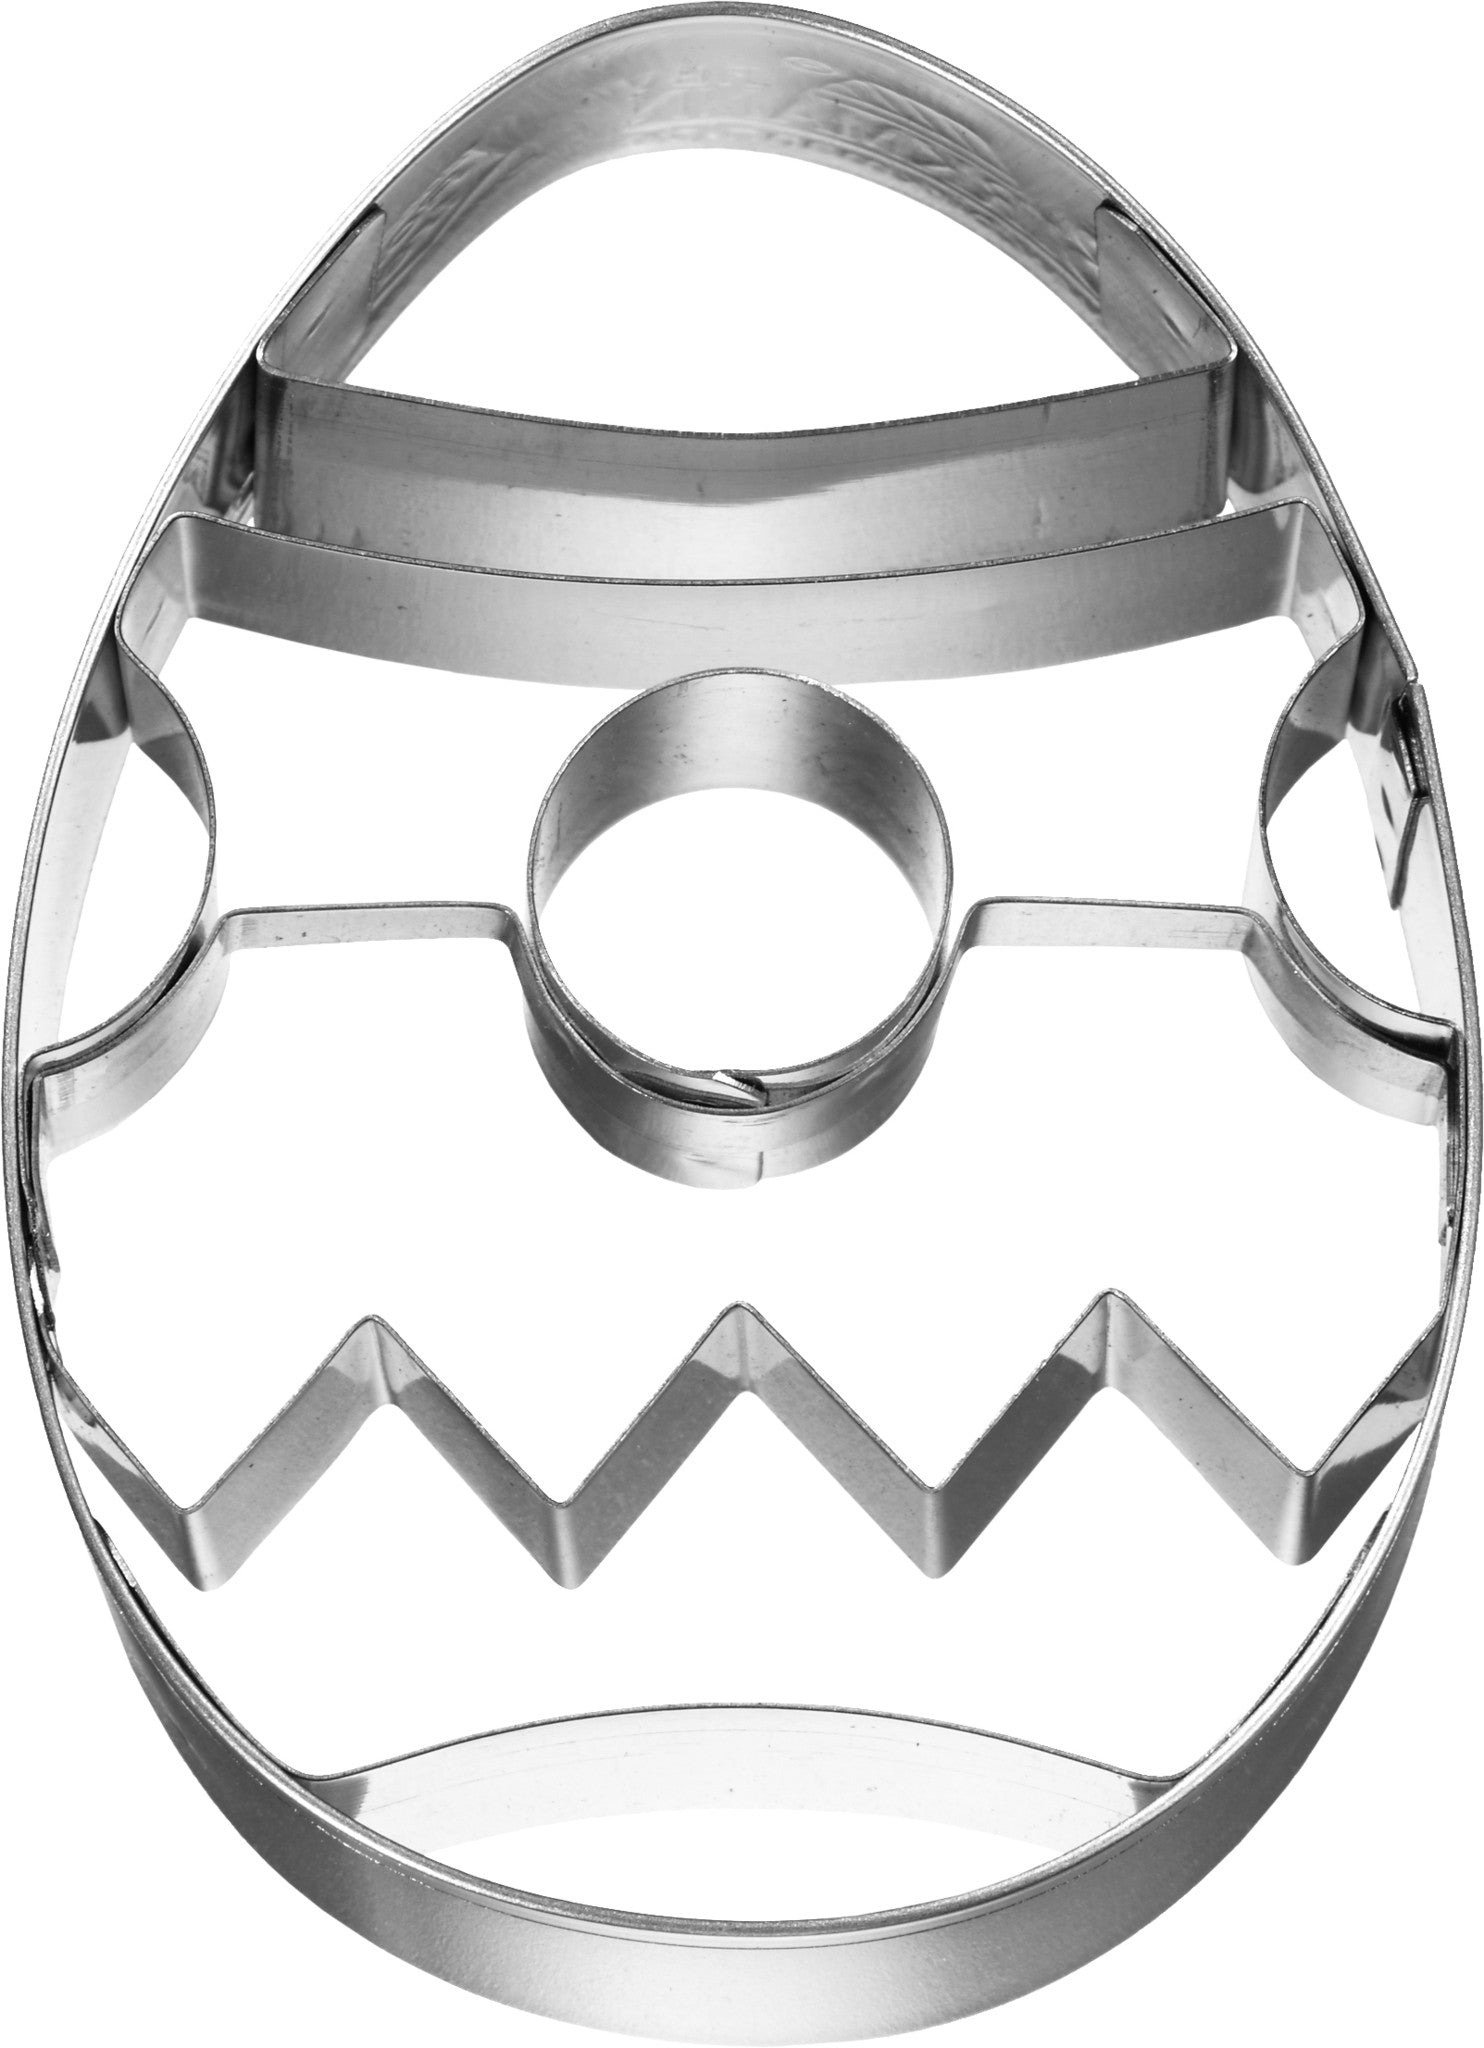 Easter Egg Cookie Cutter With Internal Detail 2 | Cookie Cutter Shop Australia